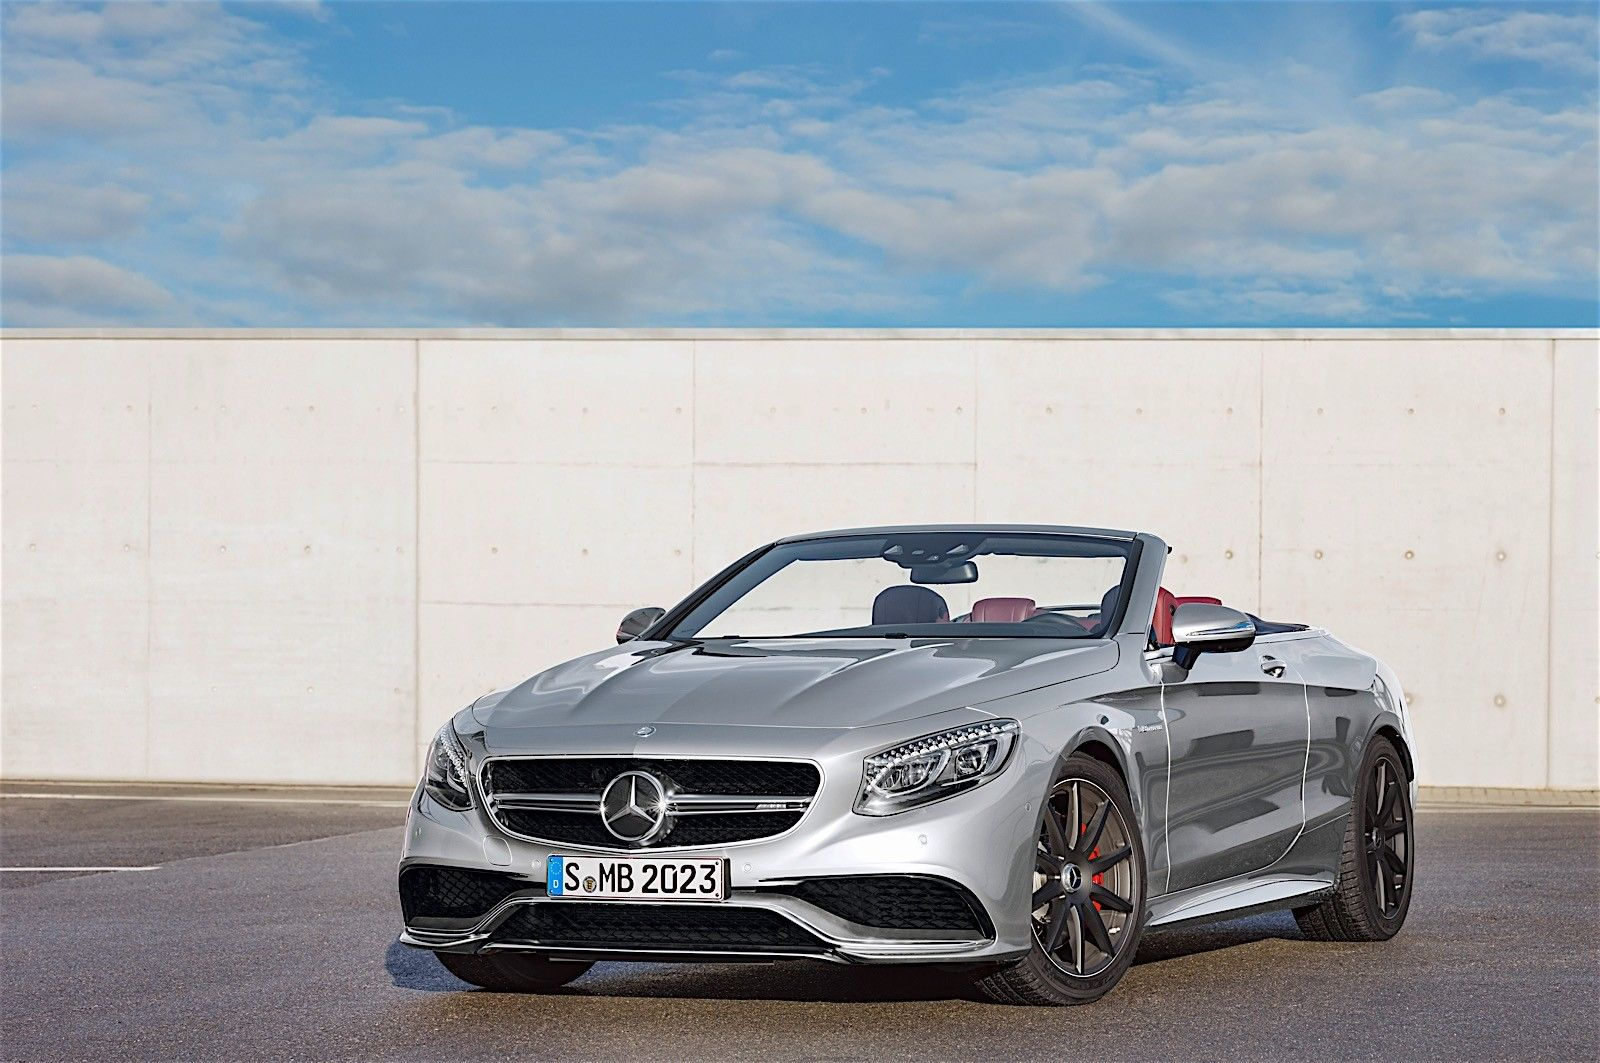 Mercedes S63 AMG Cabriolet Edition 130 | Invictus Cars | Pinterest ...